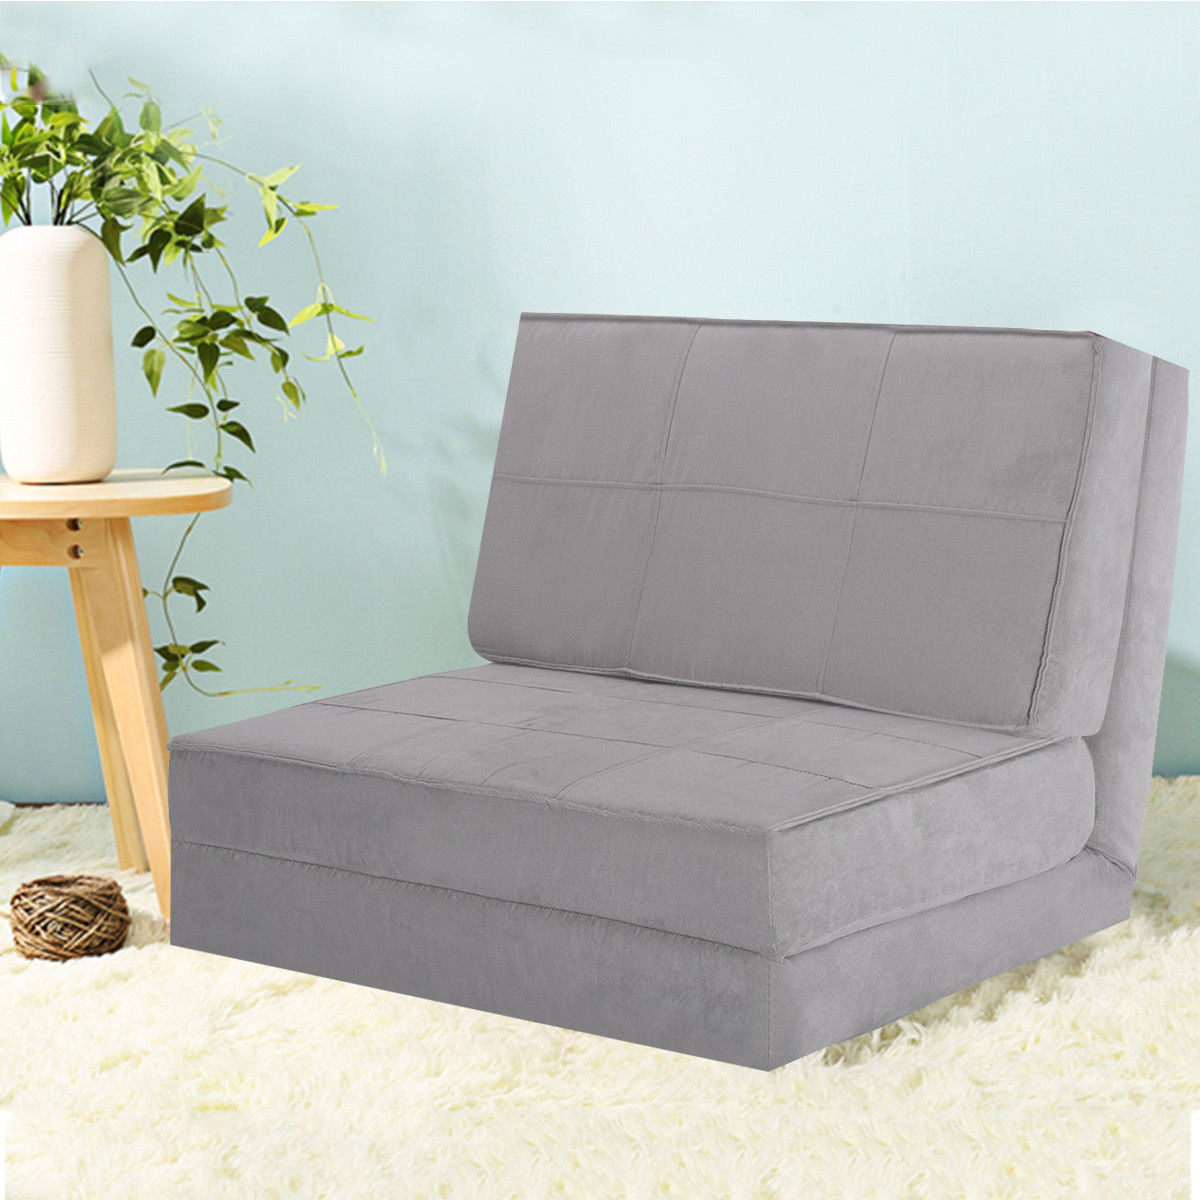 costway fold down chair flip out lounger convertible sleeper bed couch game dorm guest gray